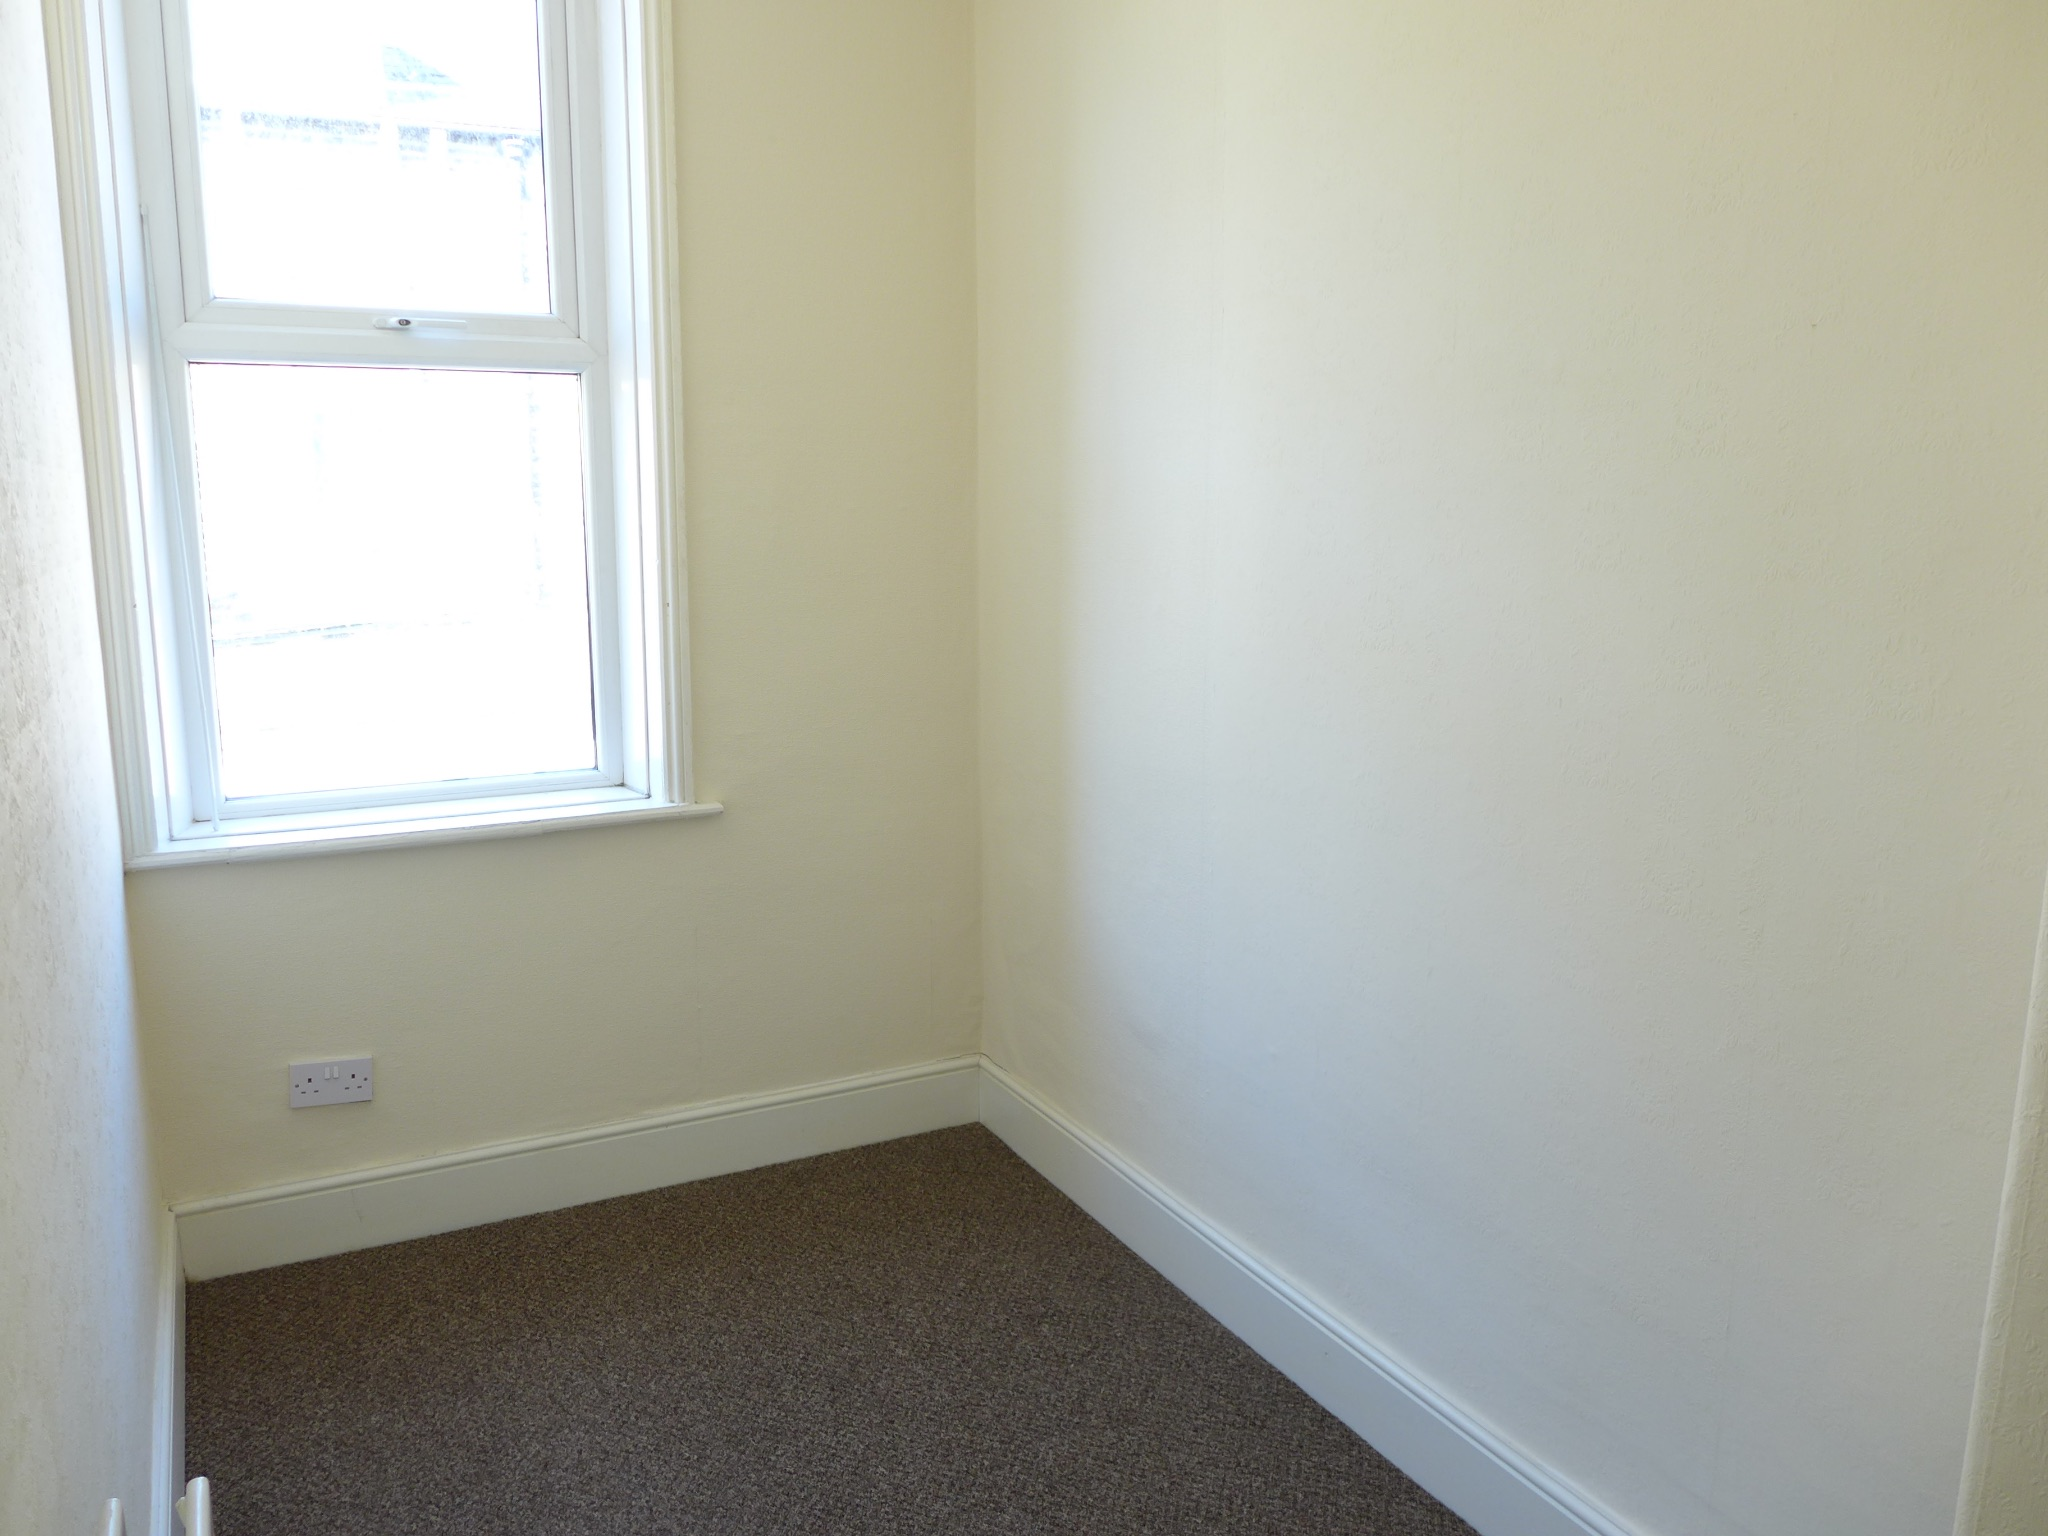 3 bedroom mid terraced house For Sale in Todmorden - Photograph 7.